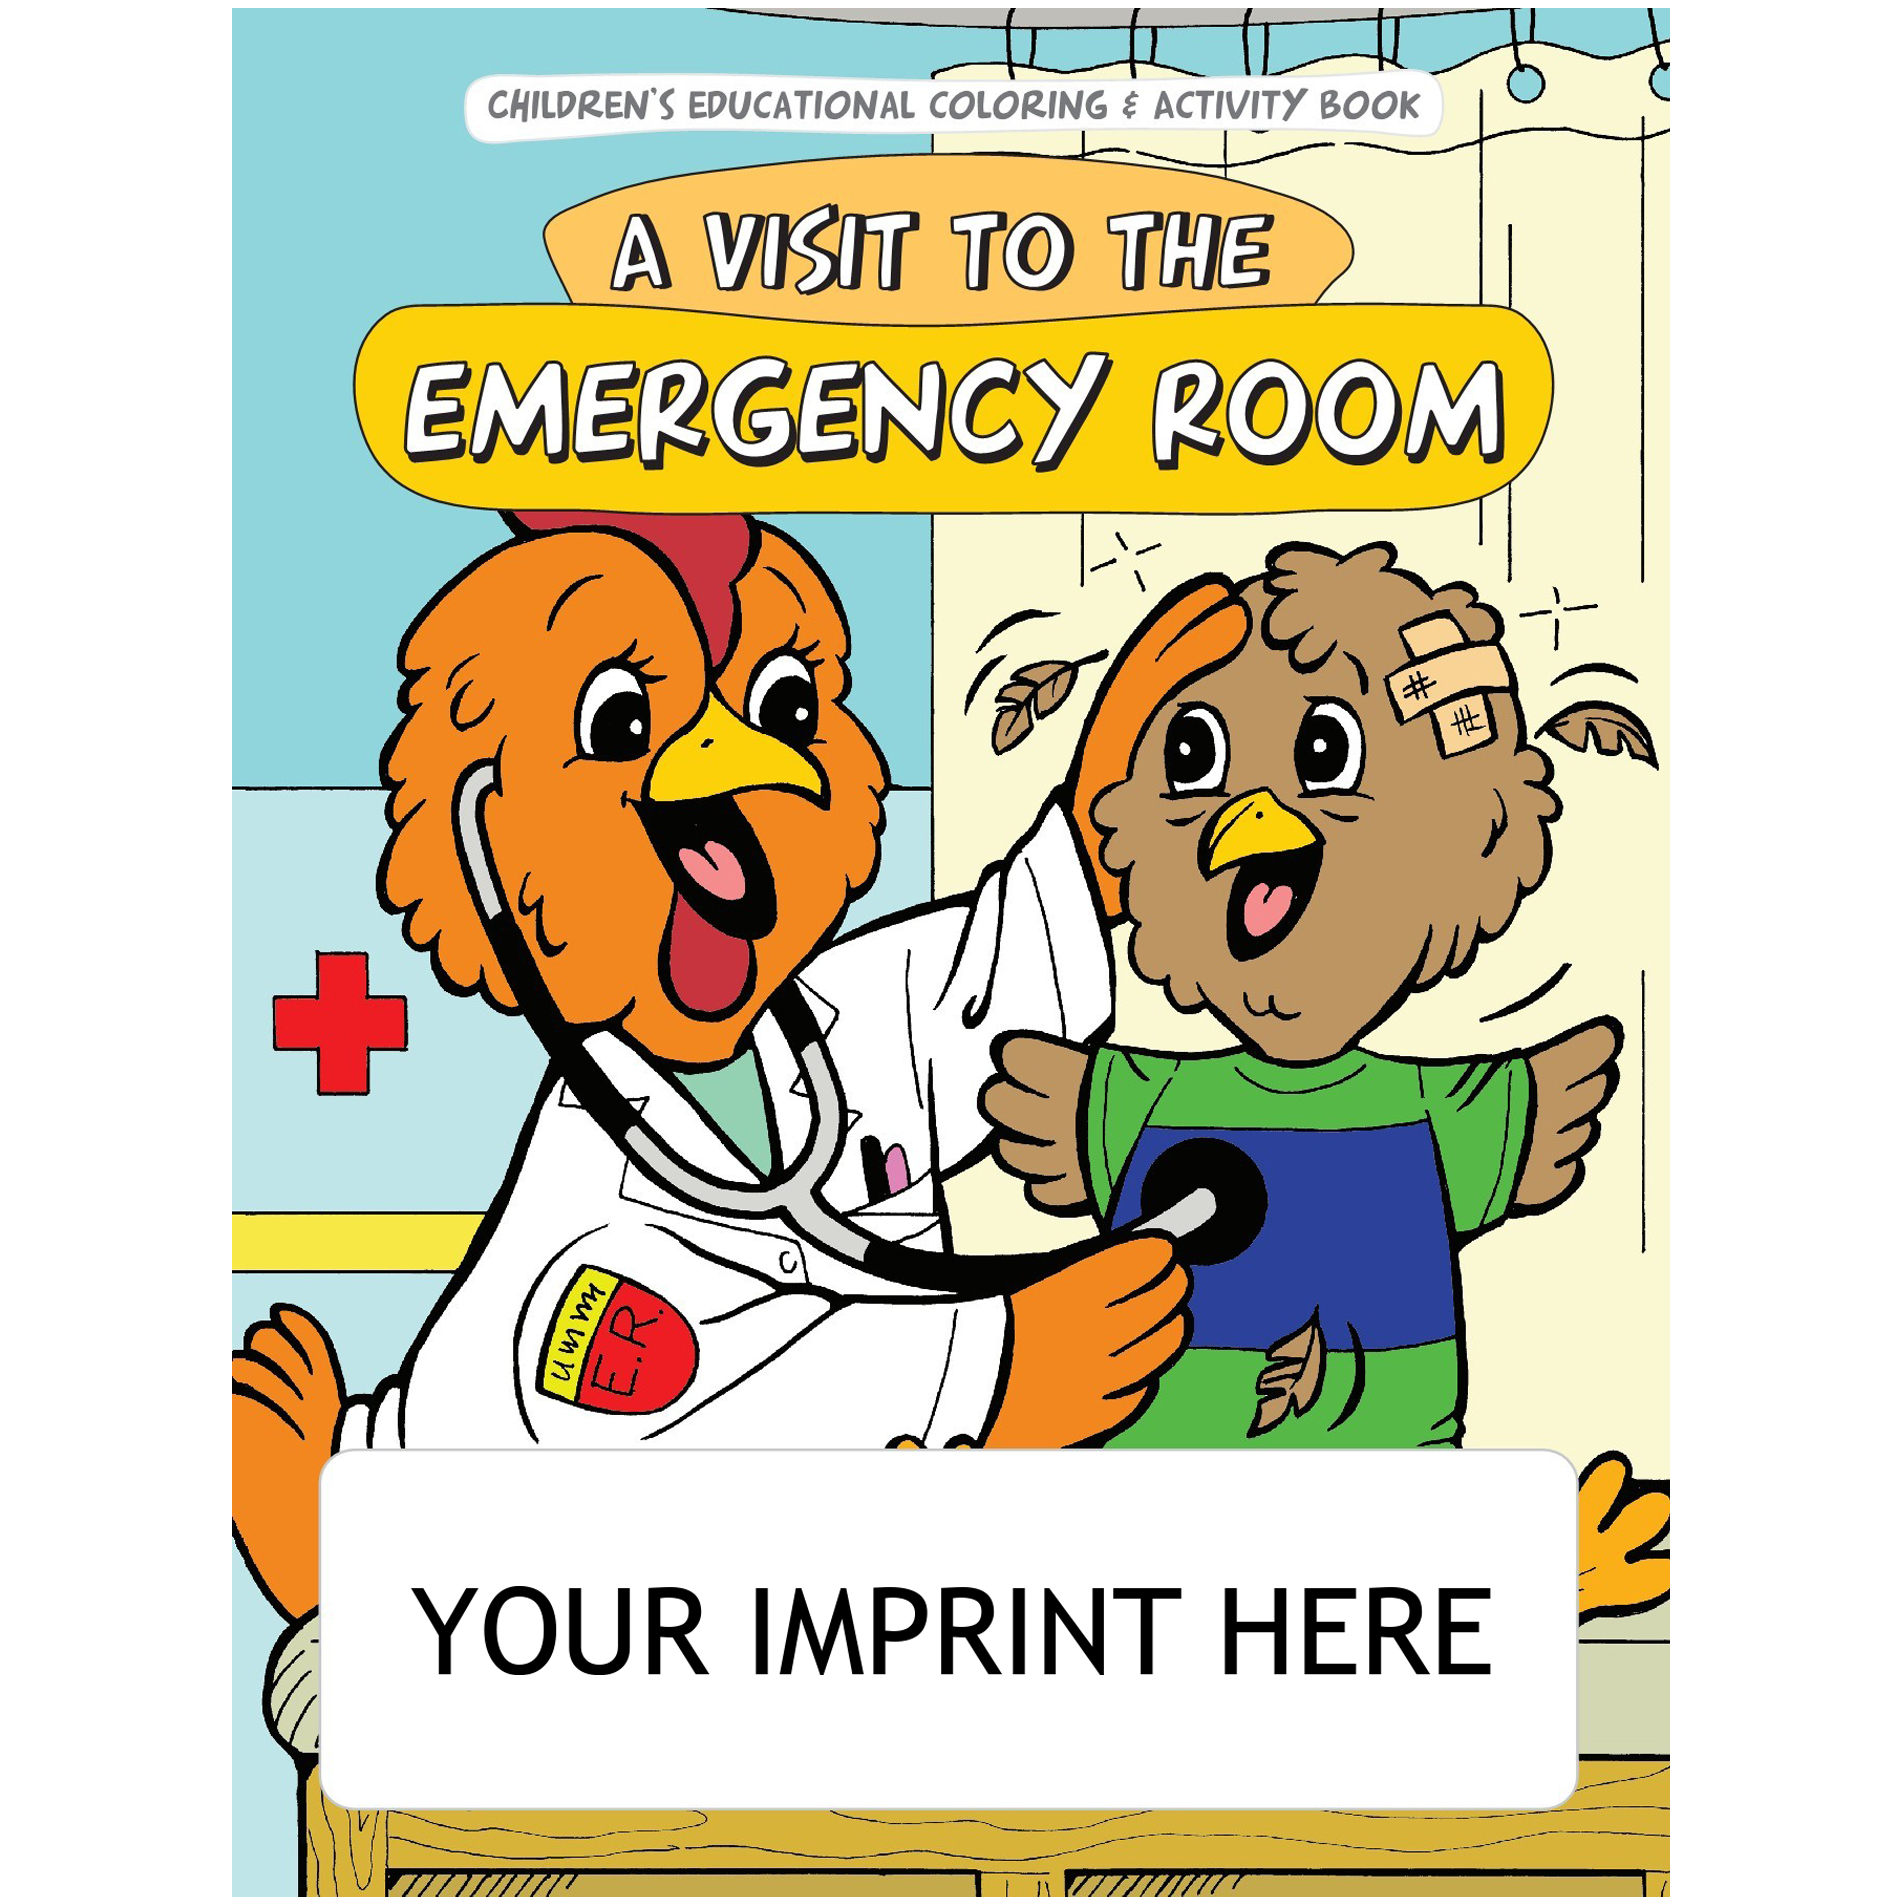 A Visit To The Emergency Room Coloring & Activity Book